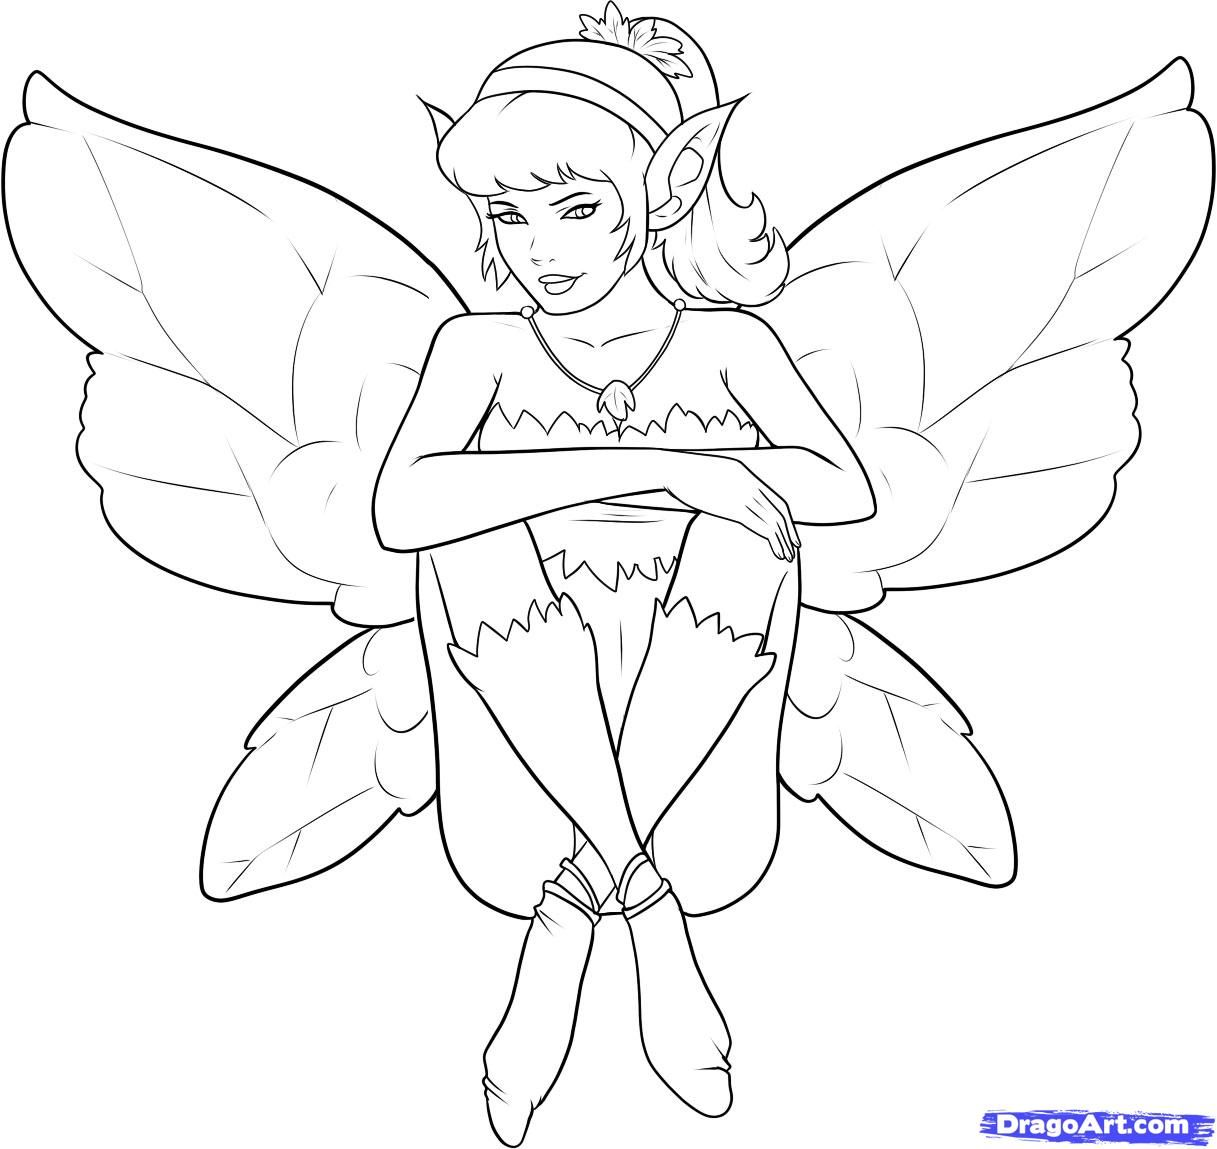 how to draw a fairy step by step fairies fantasy free online